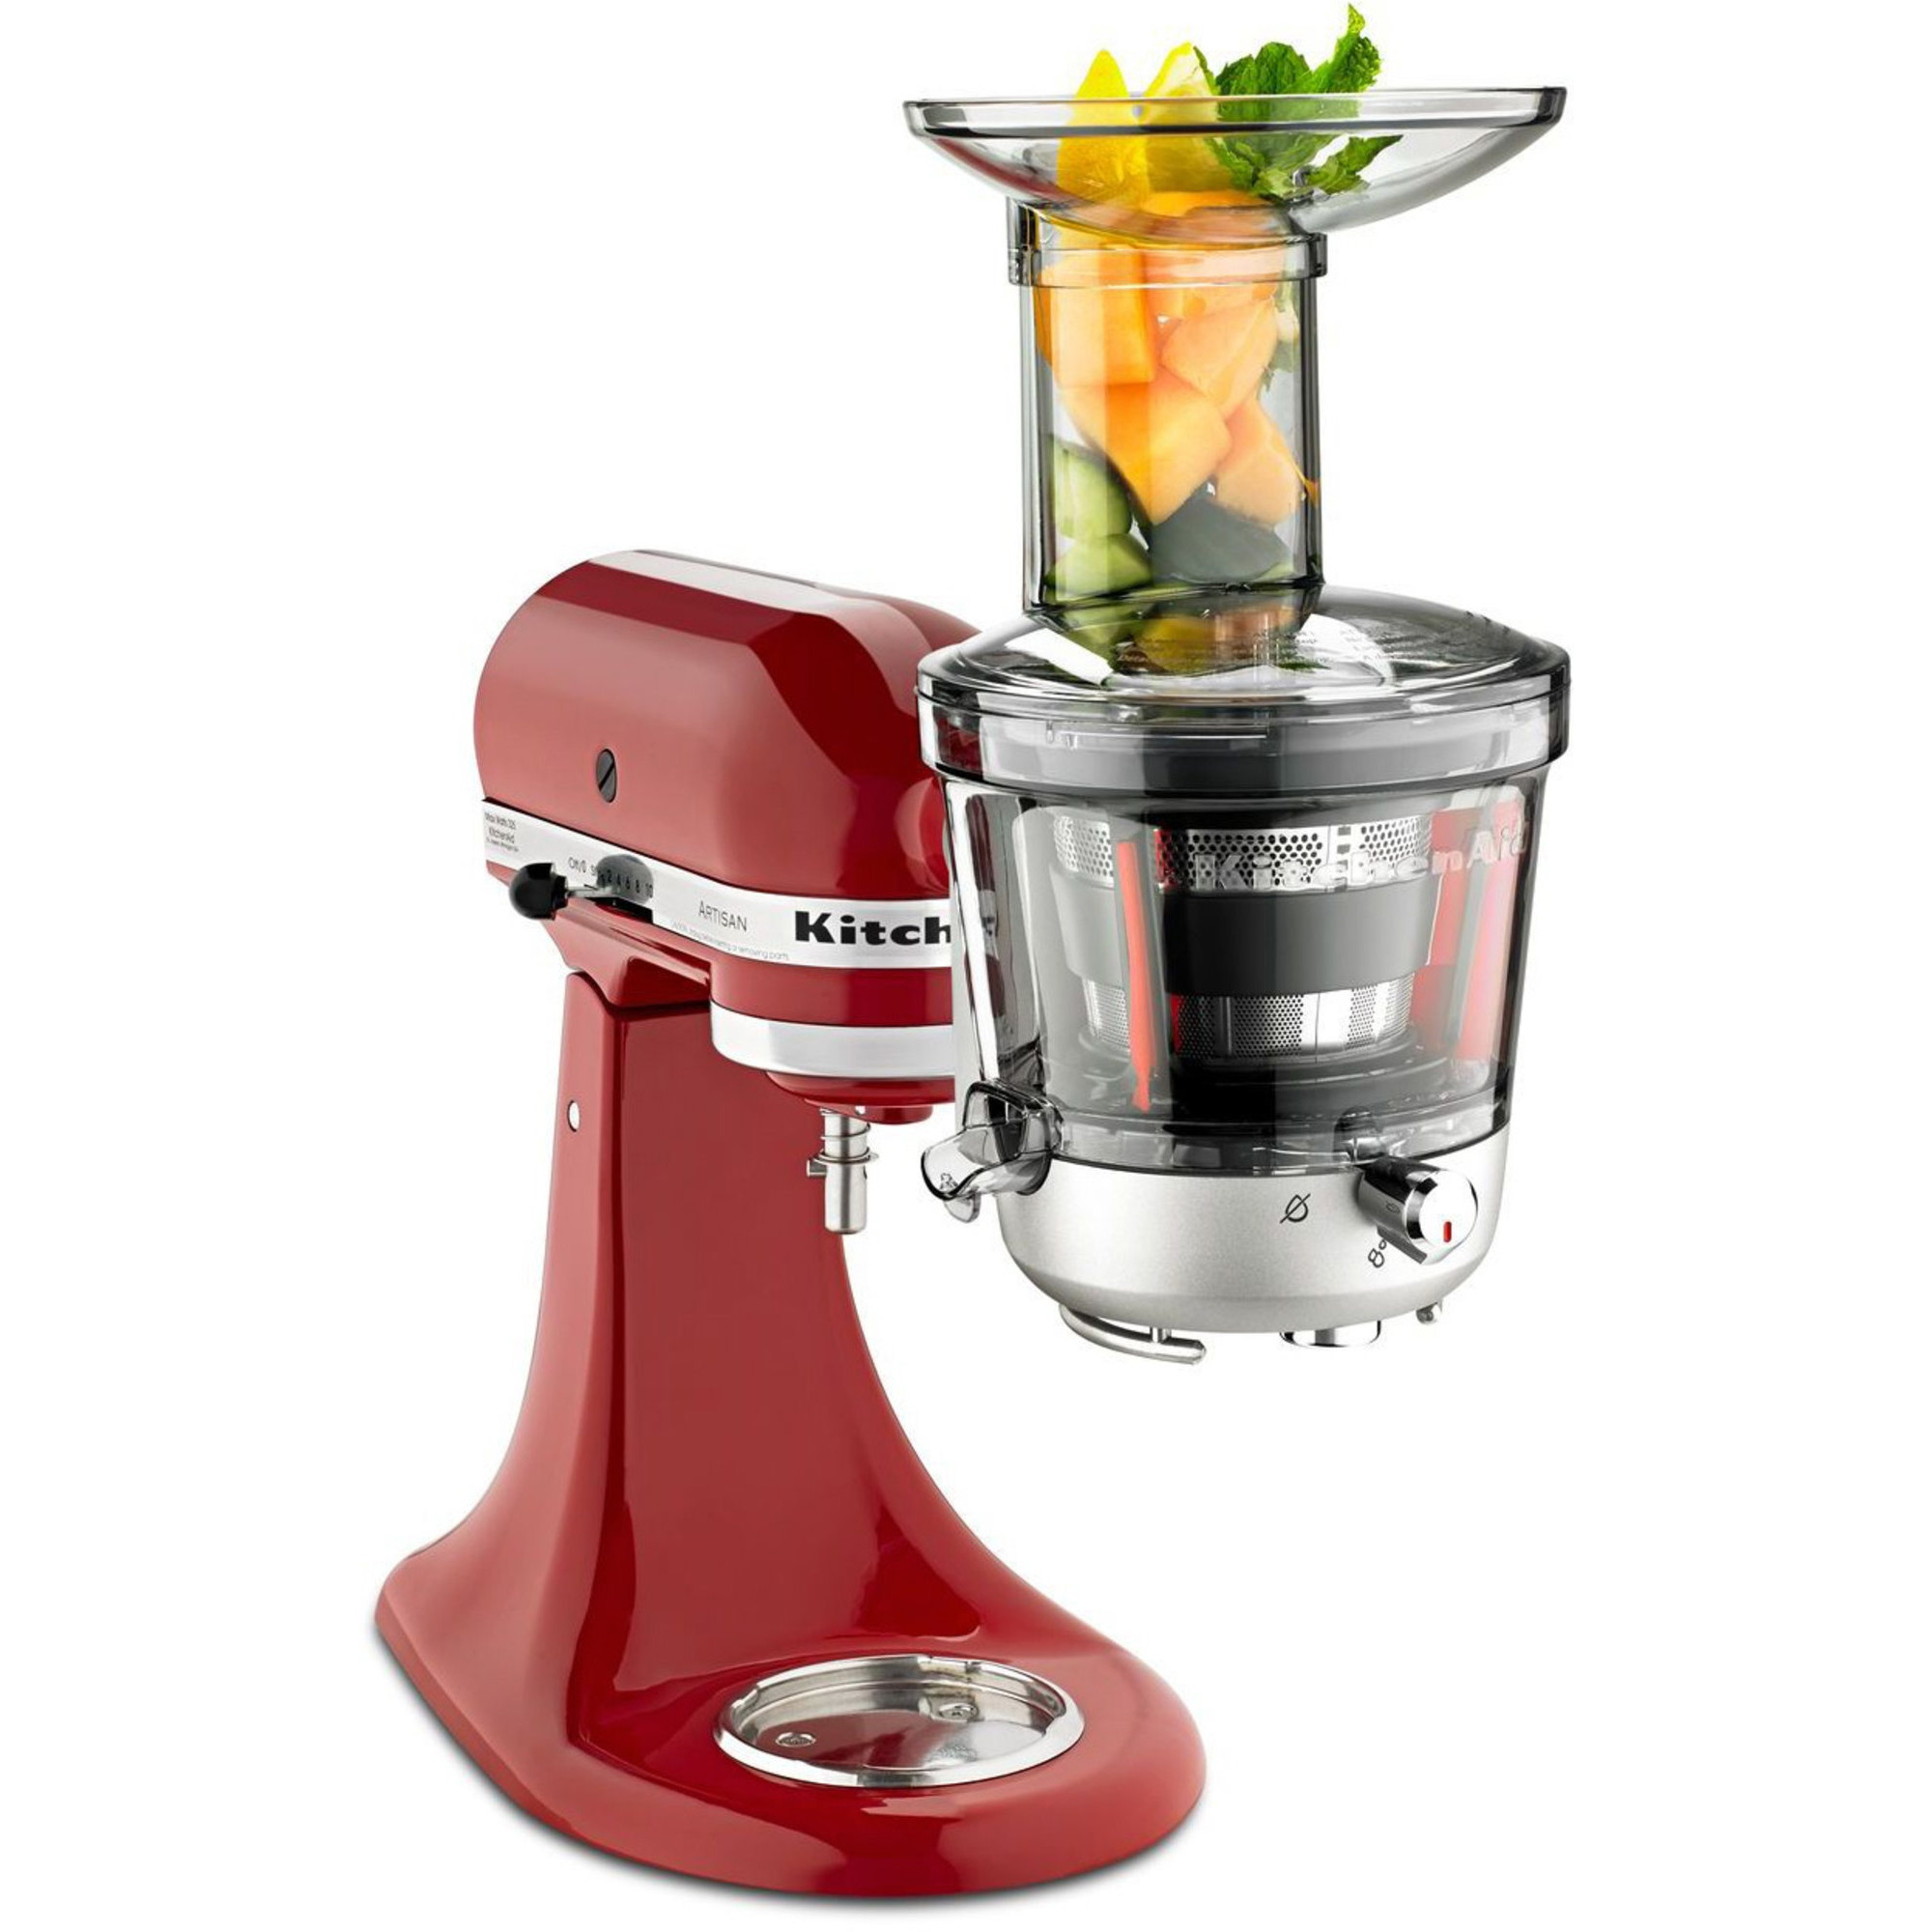 Kitchenaid Slow Juicer Kaufen : SM1JA Slow Juicer fra KitchenAid Slow Juicer tilbehor ...